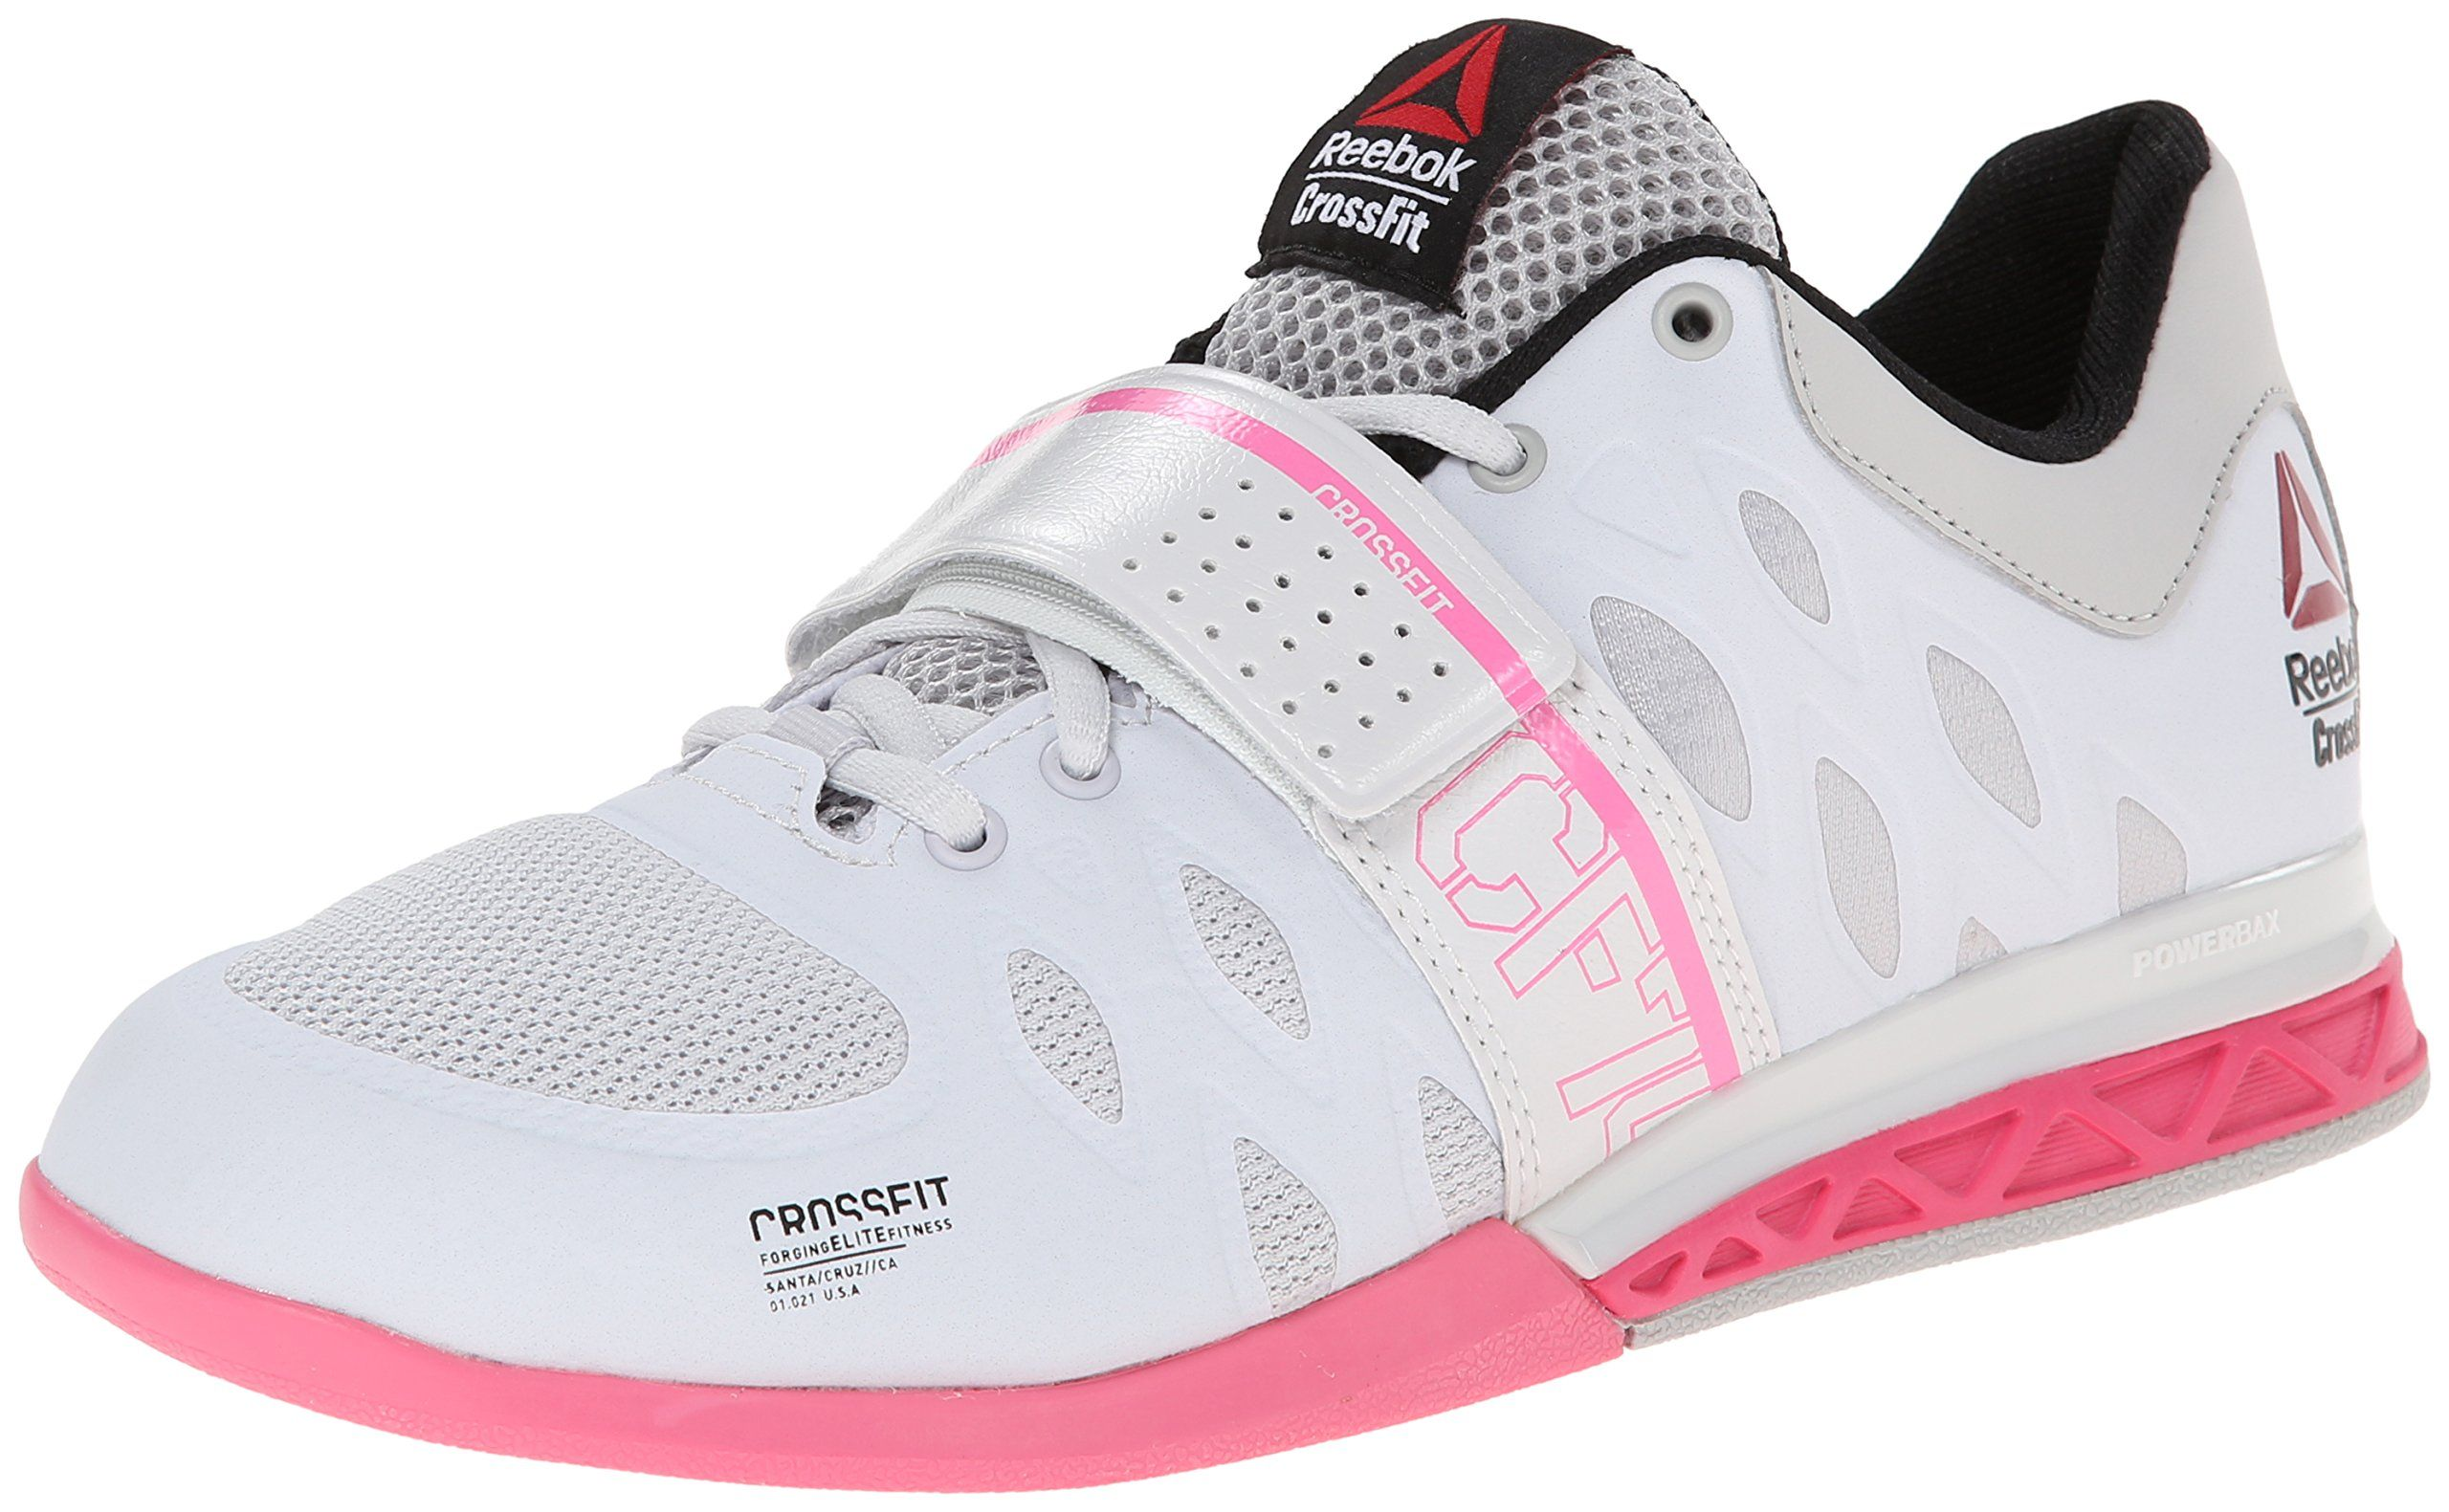 82133c09eccb3 Amazon.com: Reebok Women's Crossfit Lifter 2.0 Training Shoe: Shoes ...